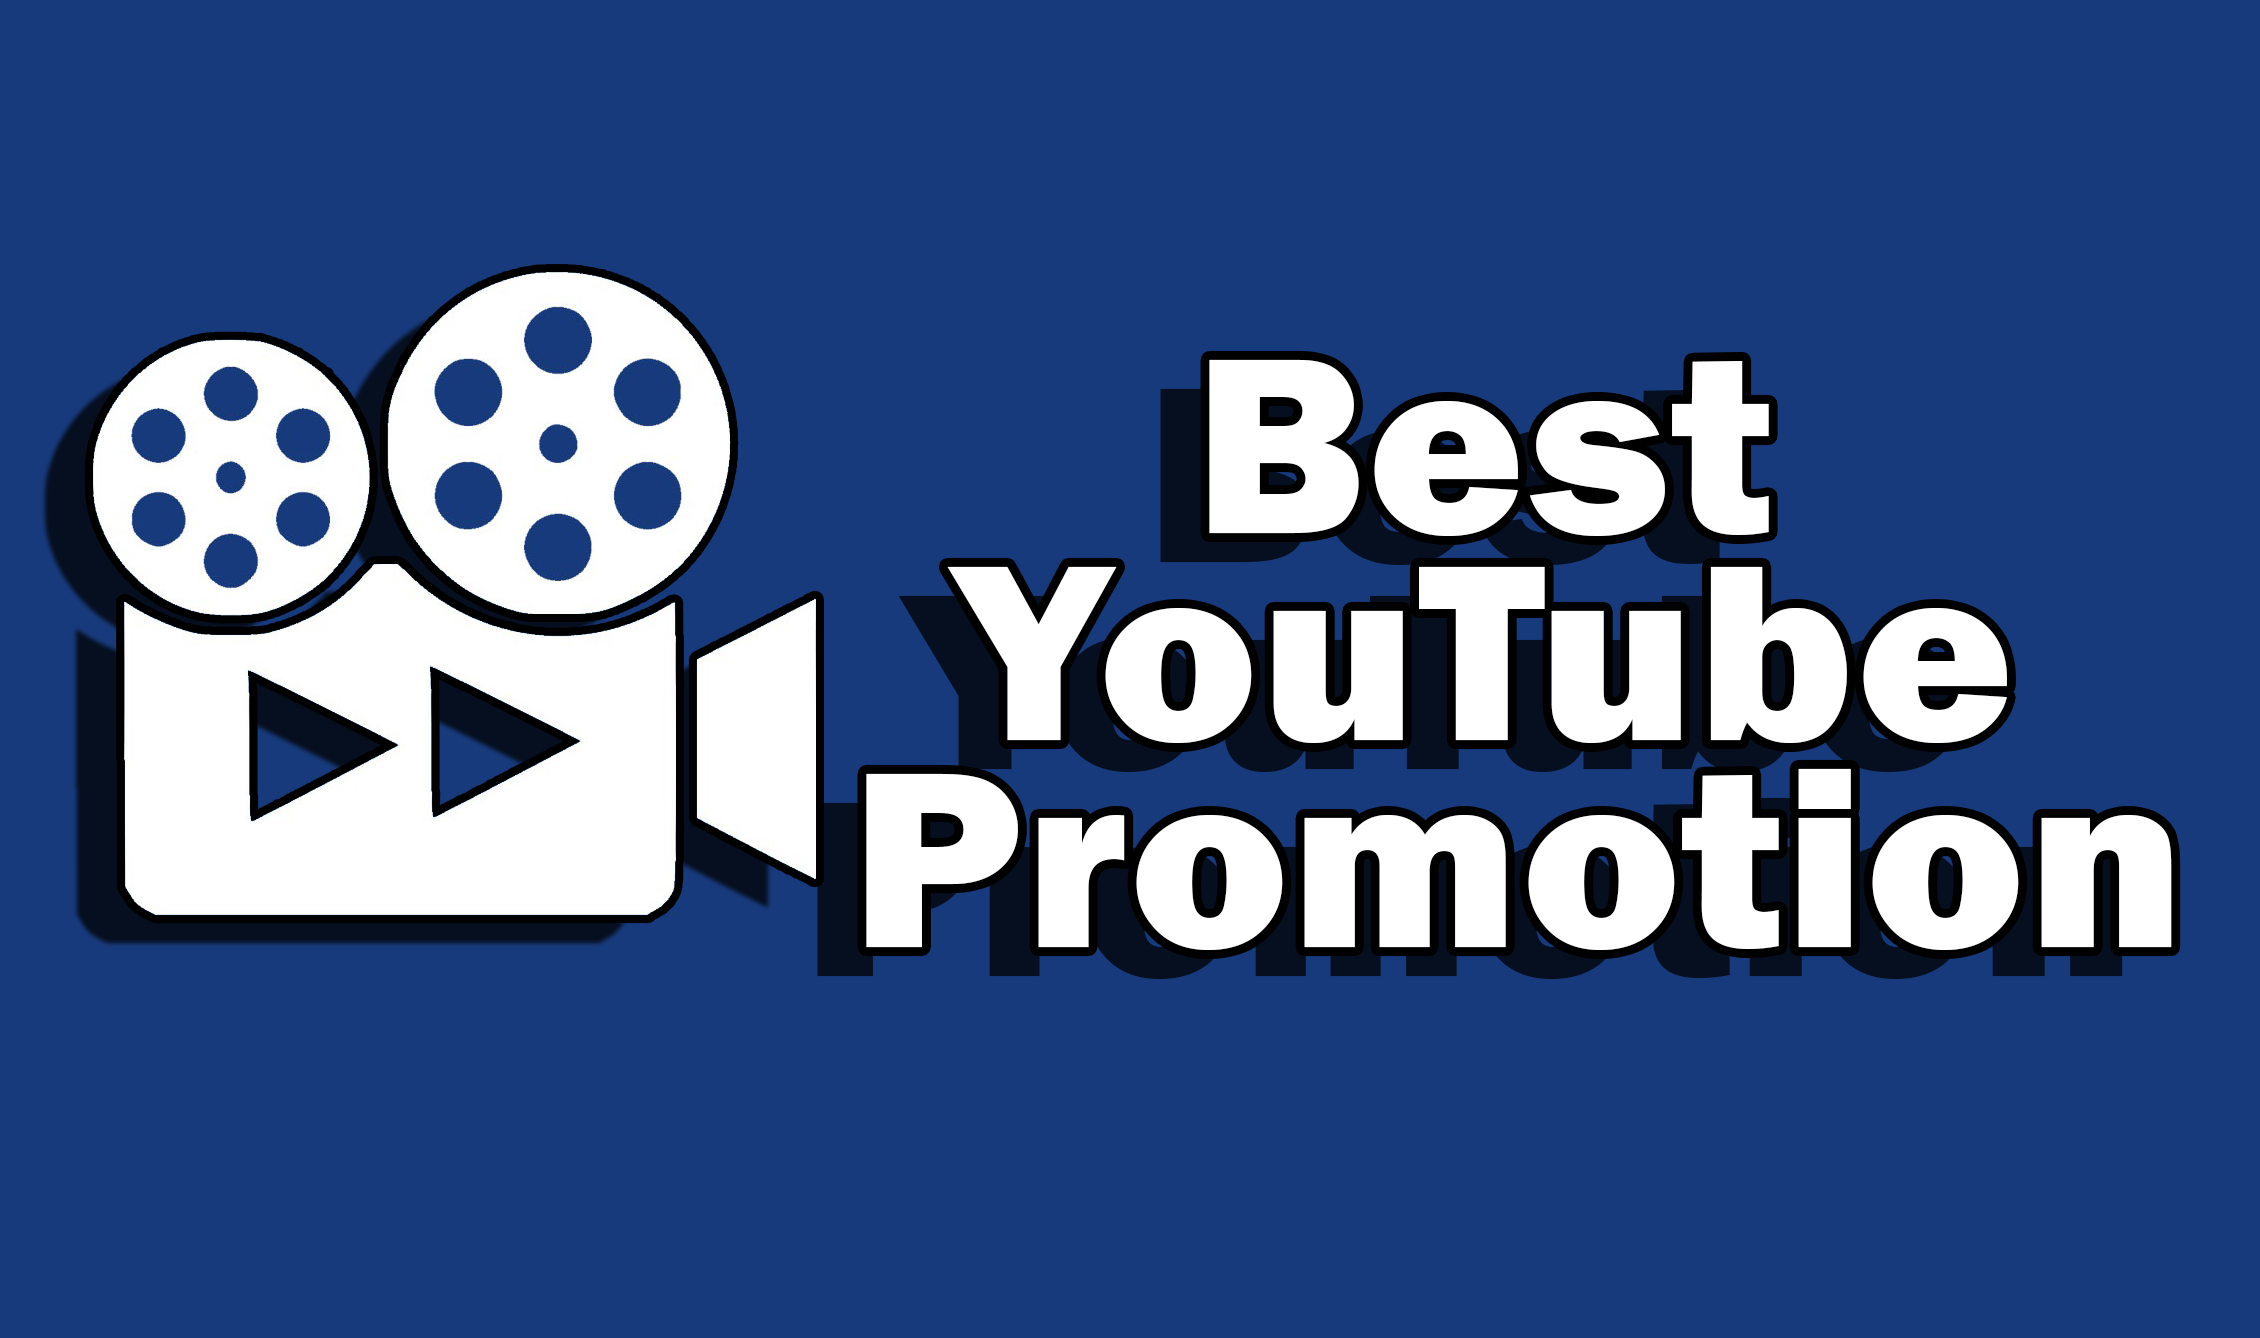 I Will Provide Complete YouTube Promotion Package